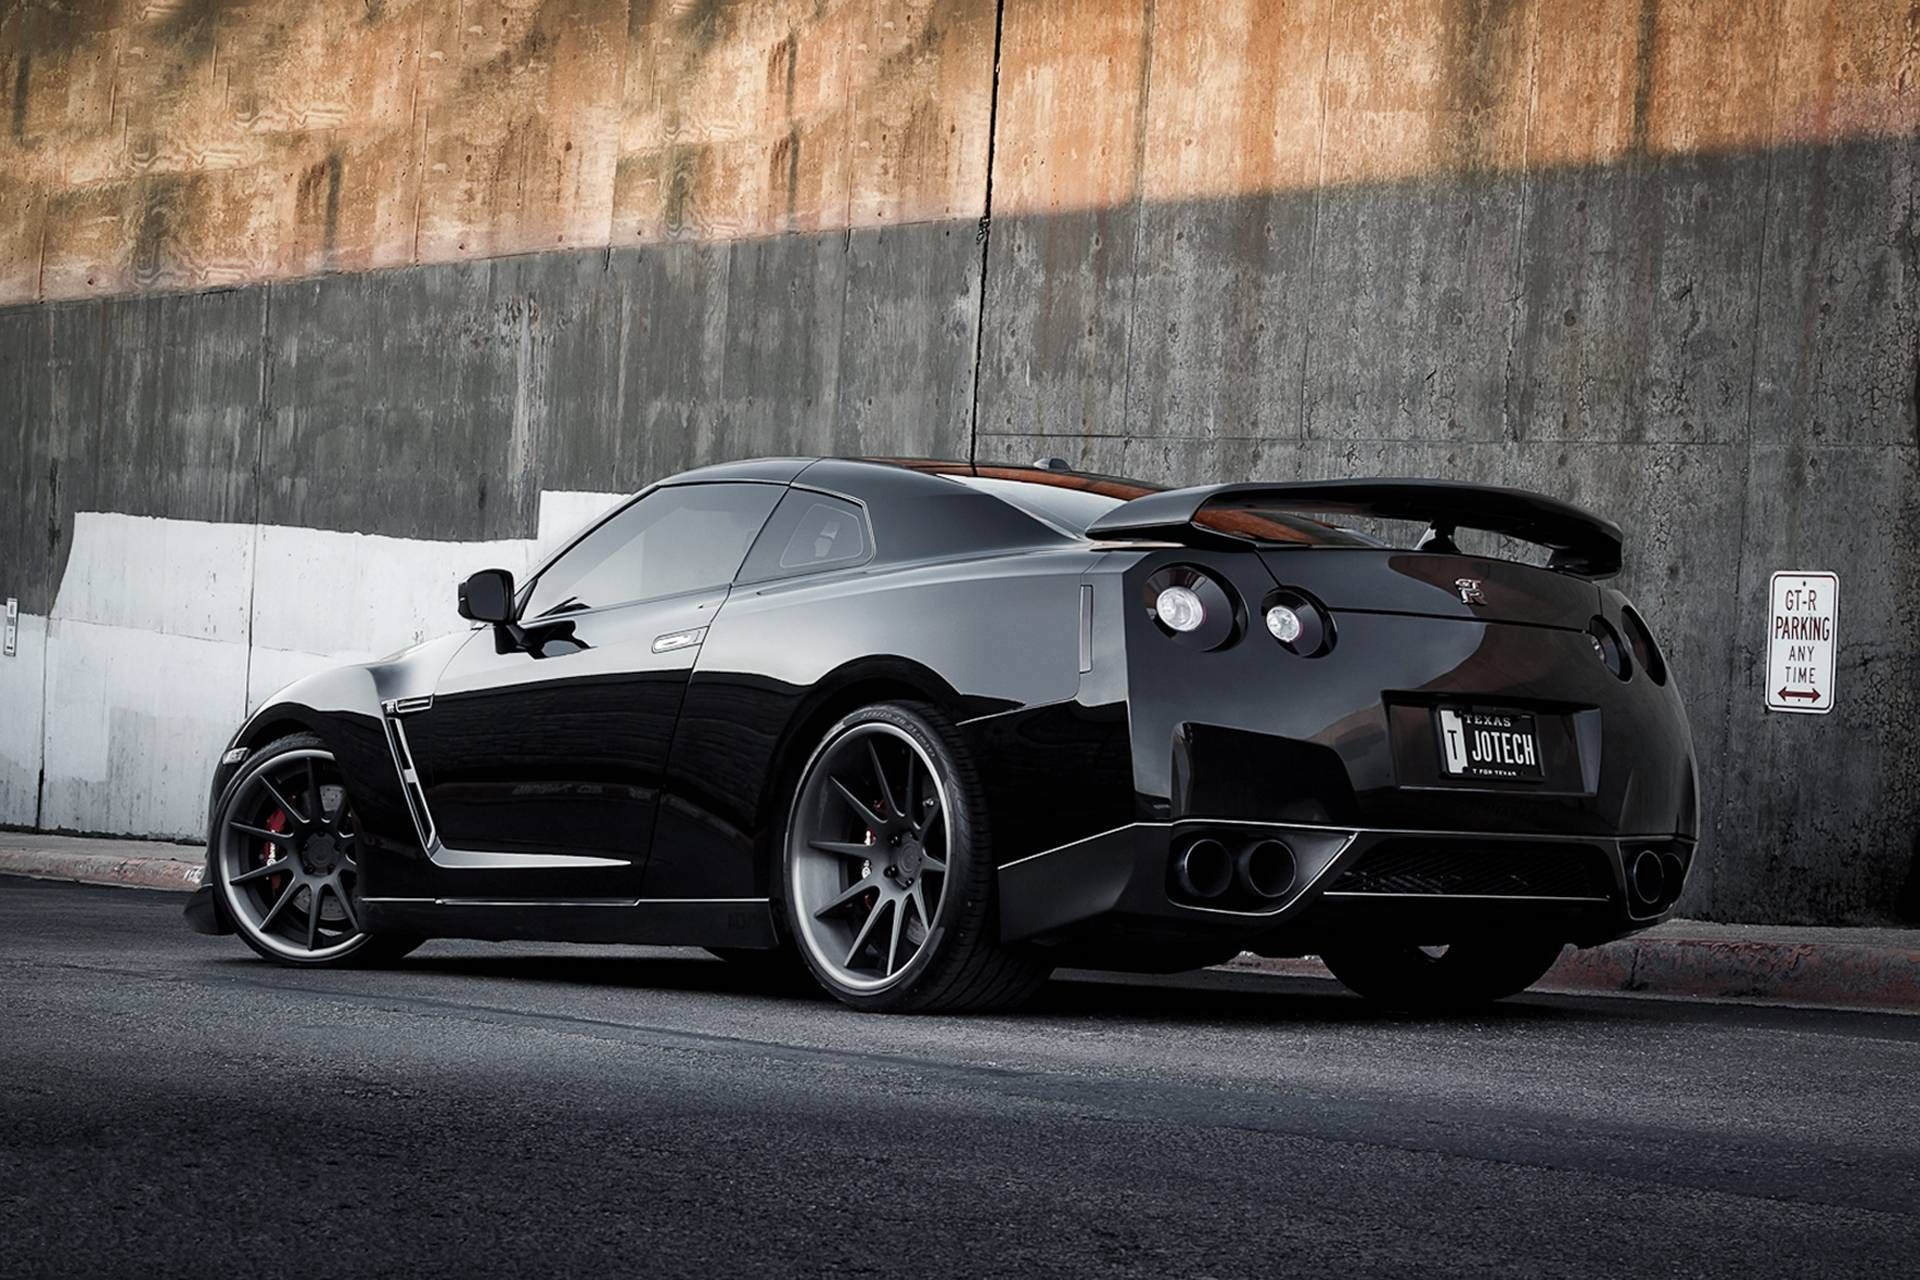 Gtr Wallpaper Mobile 7ep Azris Black Toys Pinterest Nissan